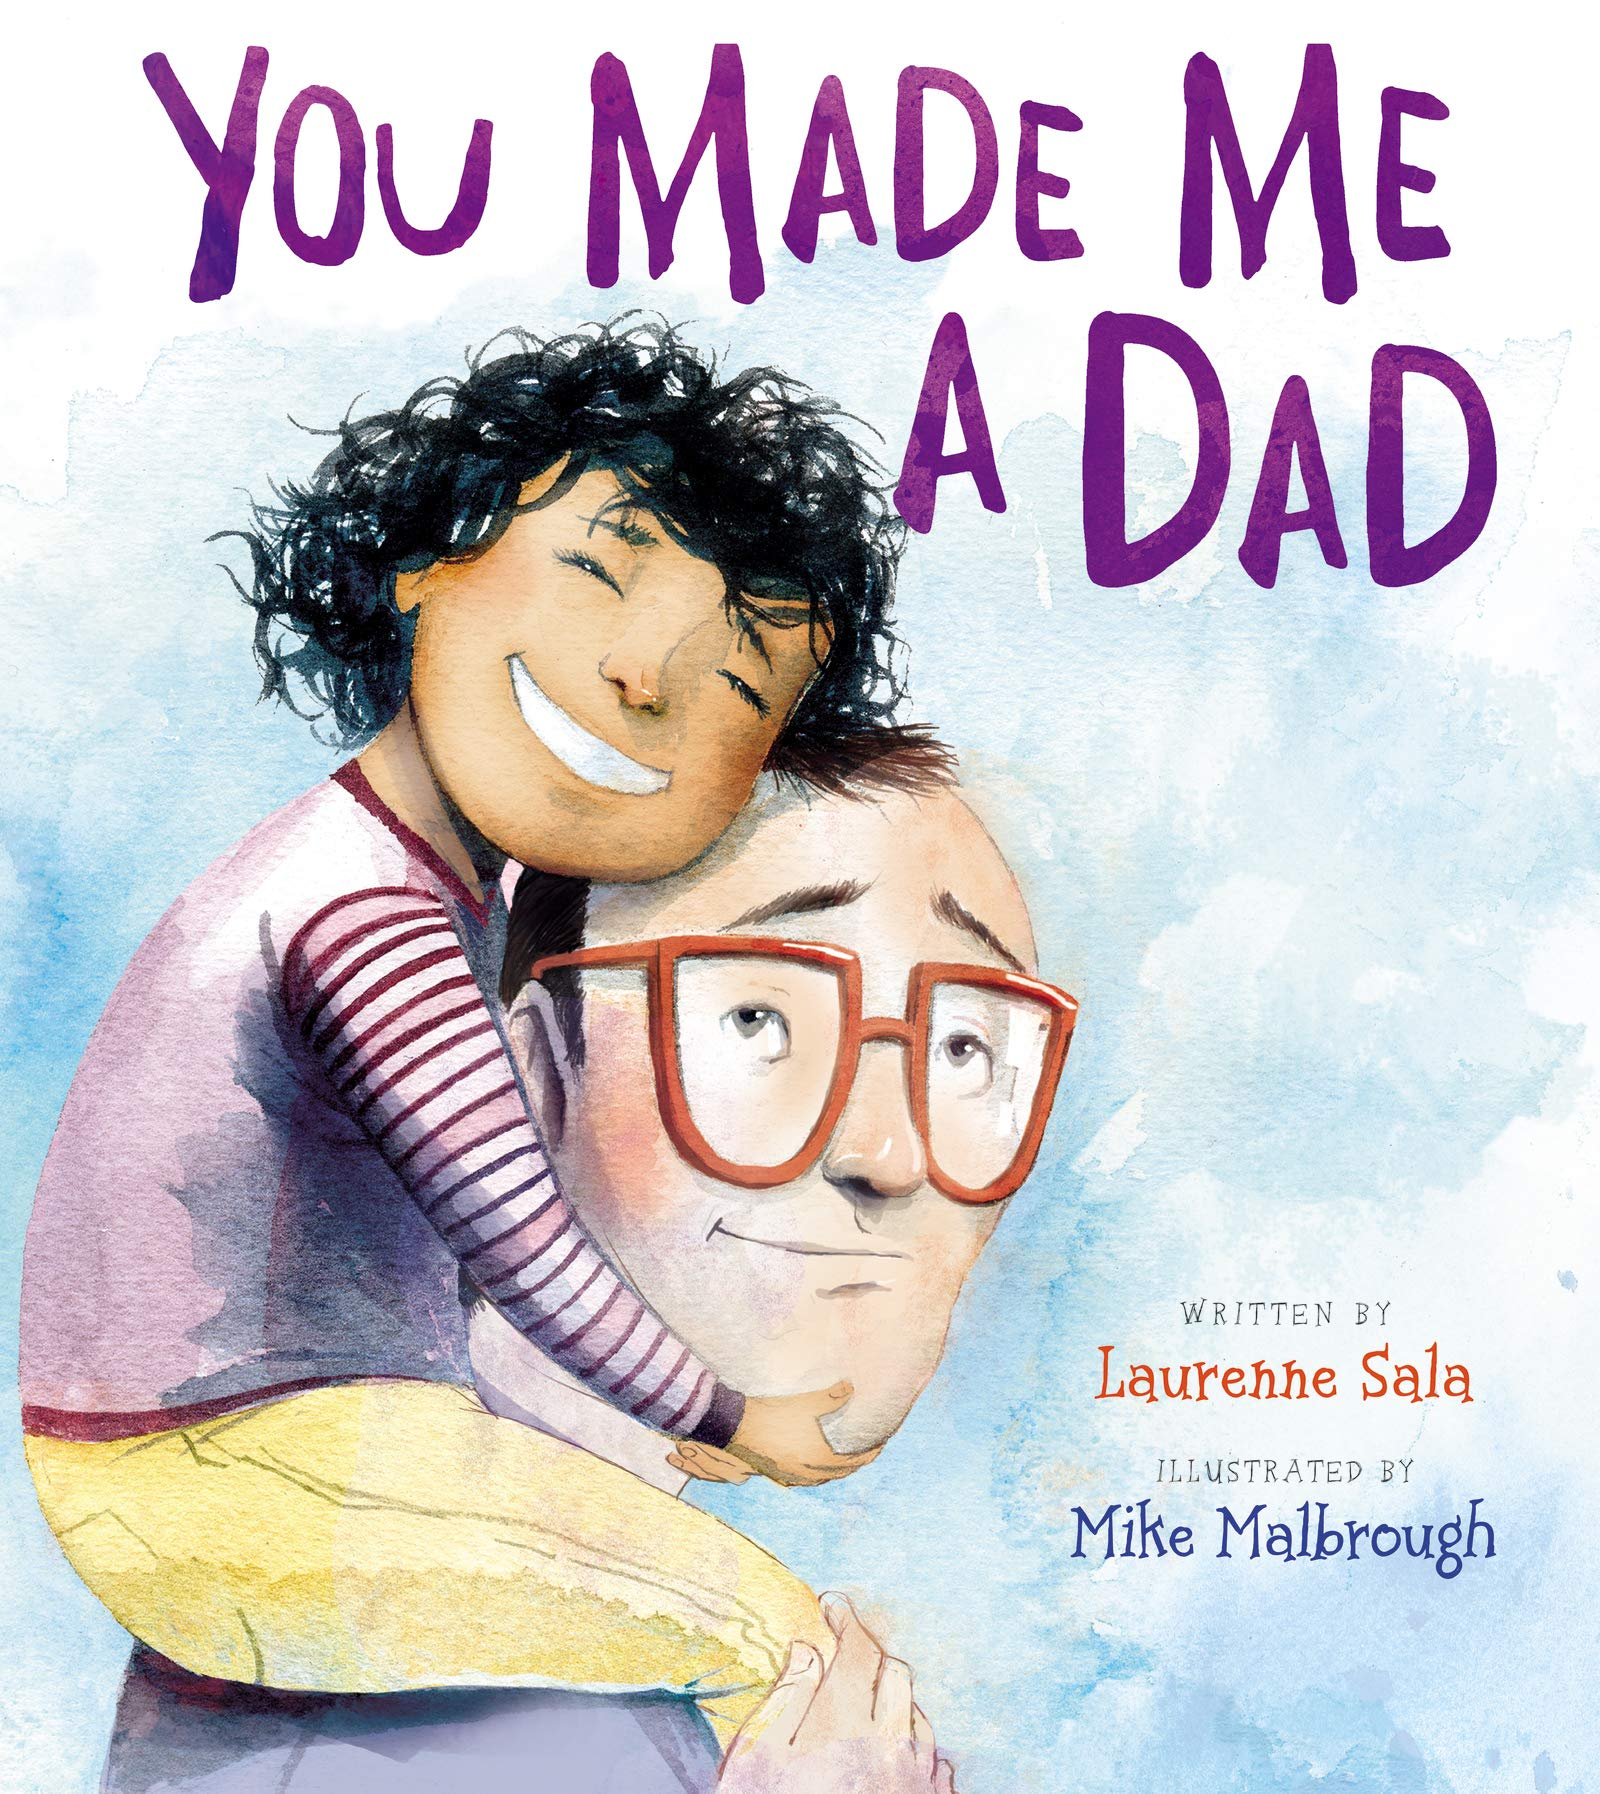 Father's Day picture books: You Made Me a Dad by Laurenne Sala